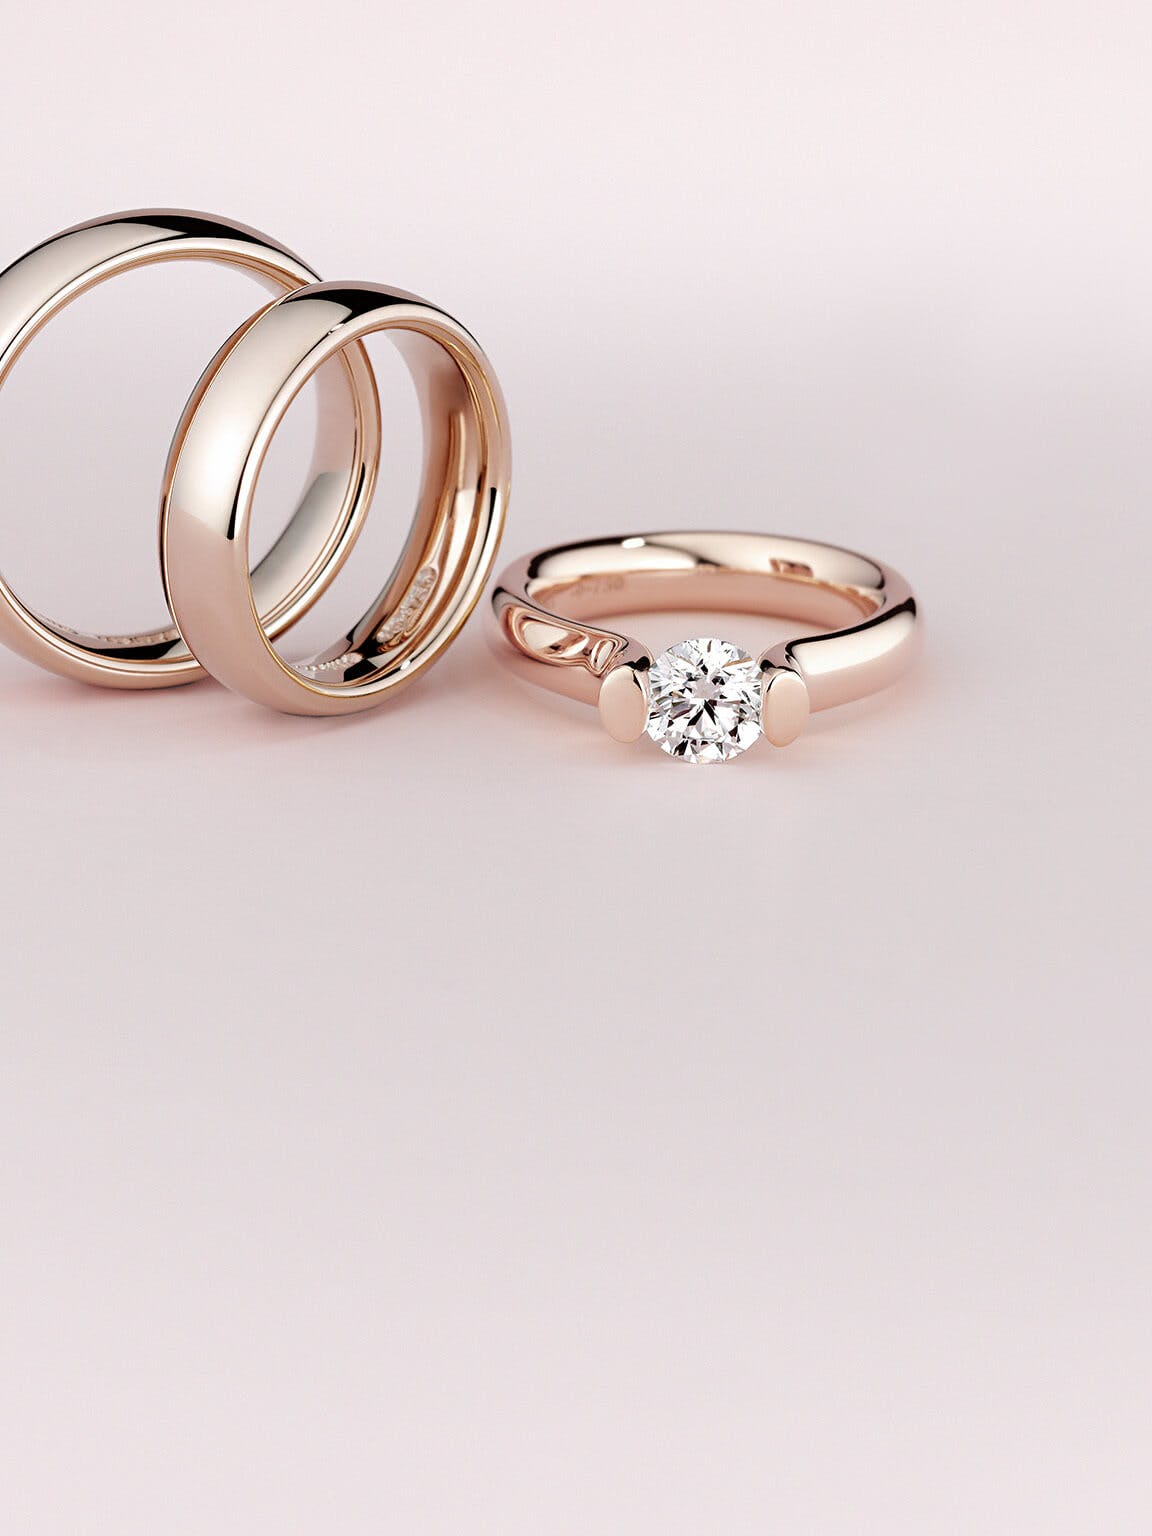 This is a graphic of Niessing – Wedding Rings, Engagement Rings, Tension Rings